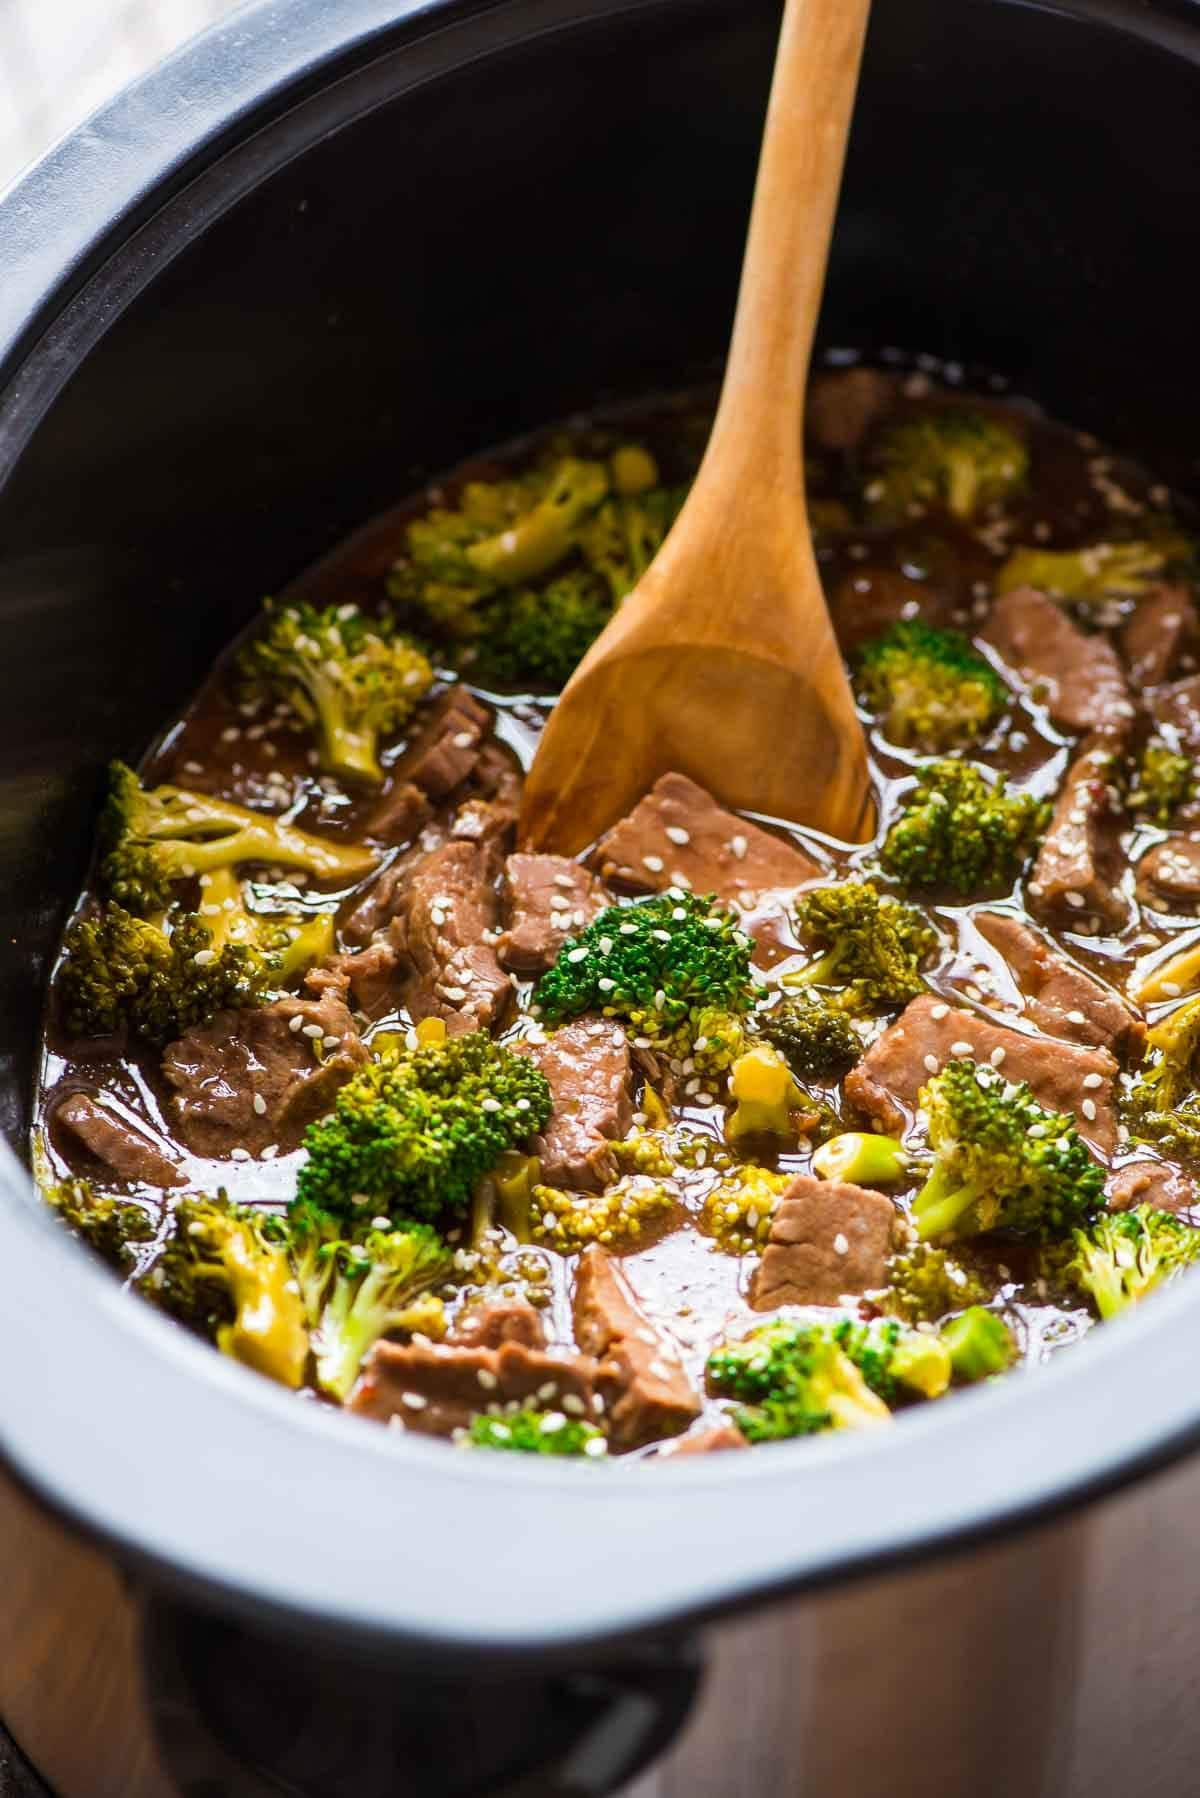 Slow Cooker Beef Recipes Healthy 20 Ideas for Slow Cooker Beef and Broccoli